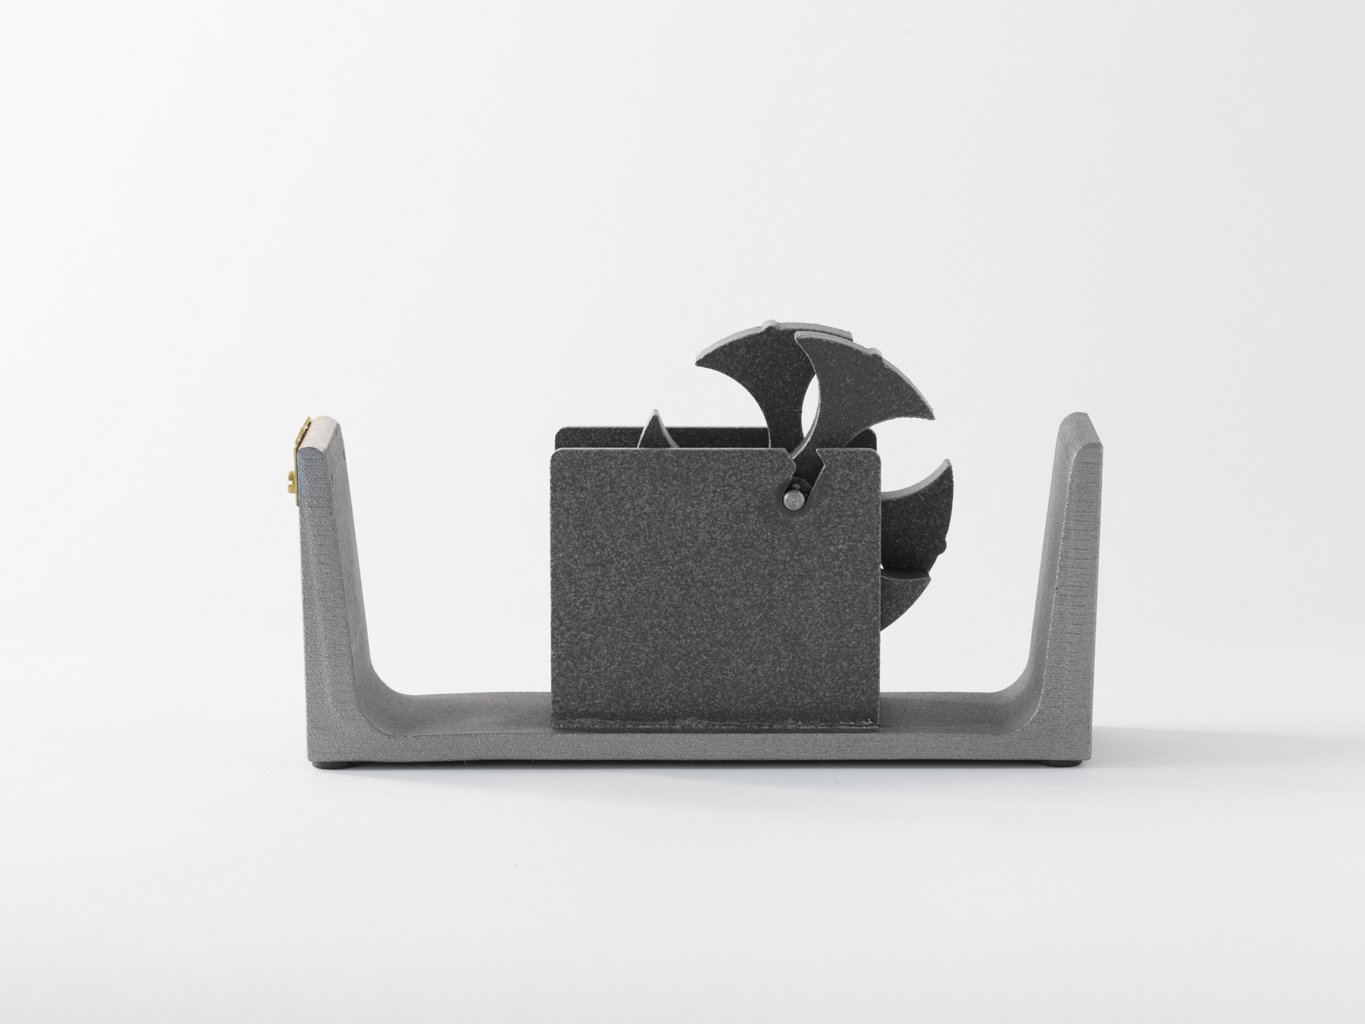 Tayo - Iron Tape Dispenser (Large)